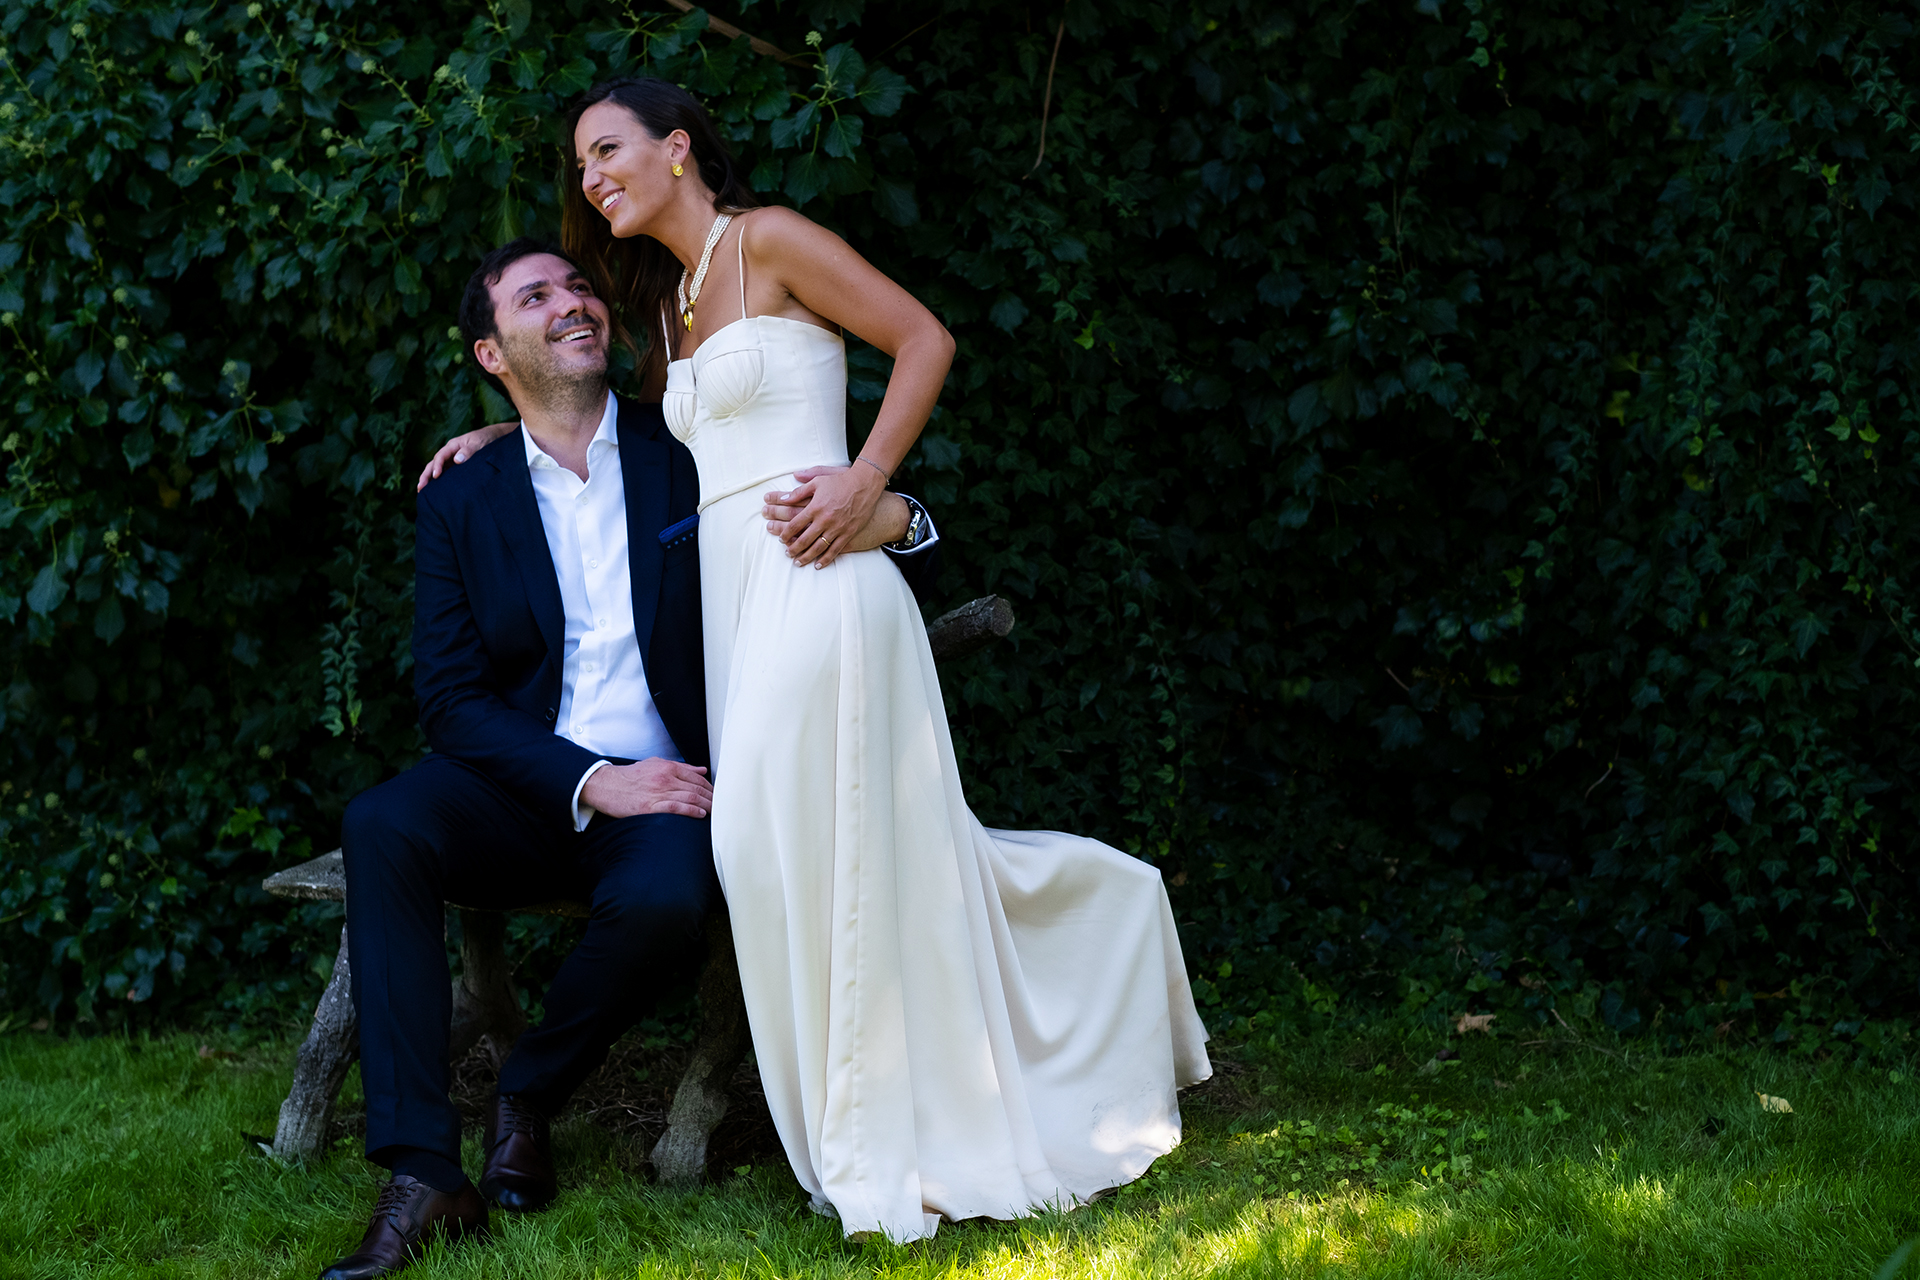 Guimaraes Backyard Wedding Portrait | The groom looks at his bride with adoration and pride